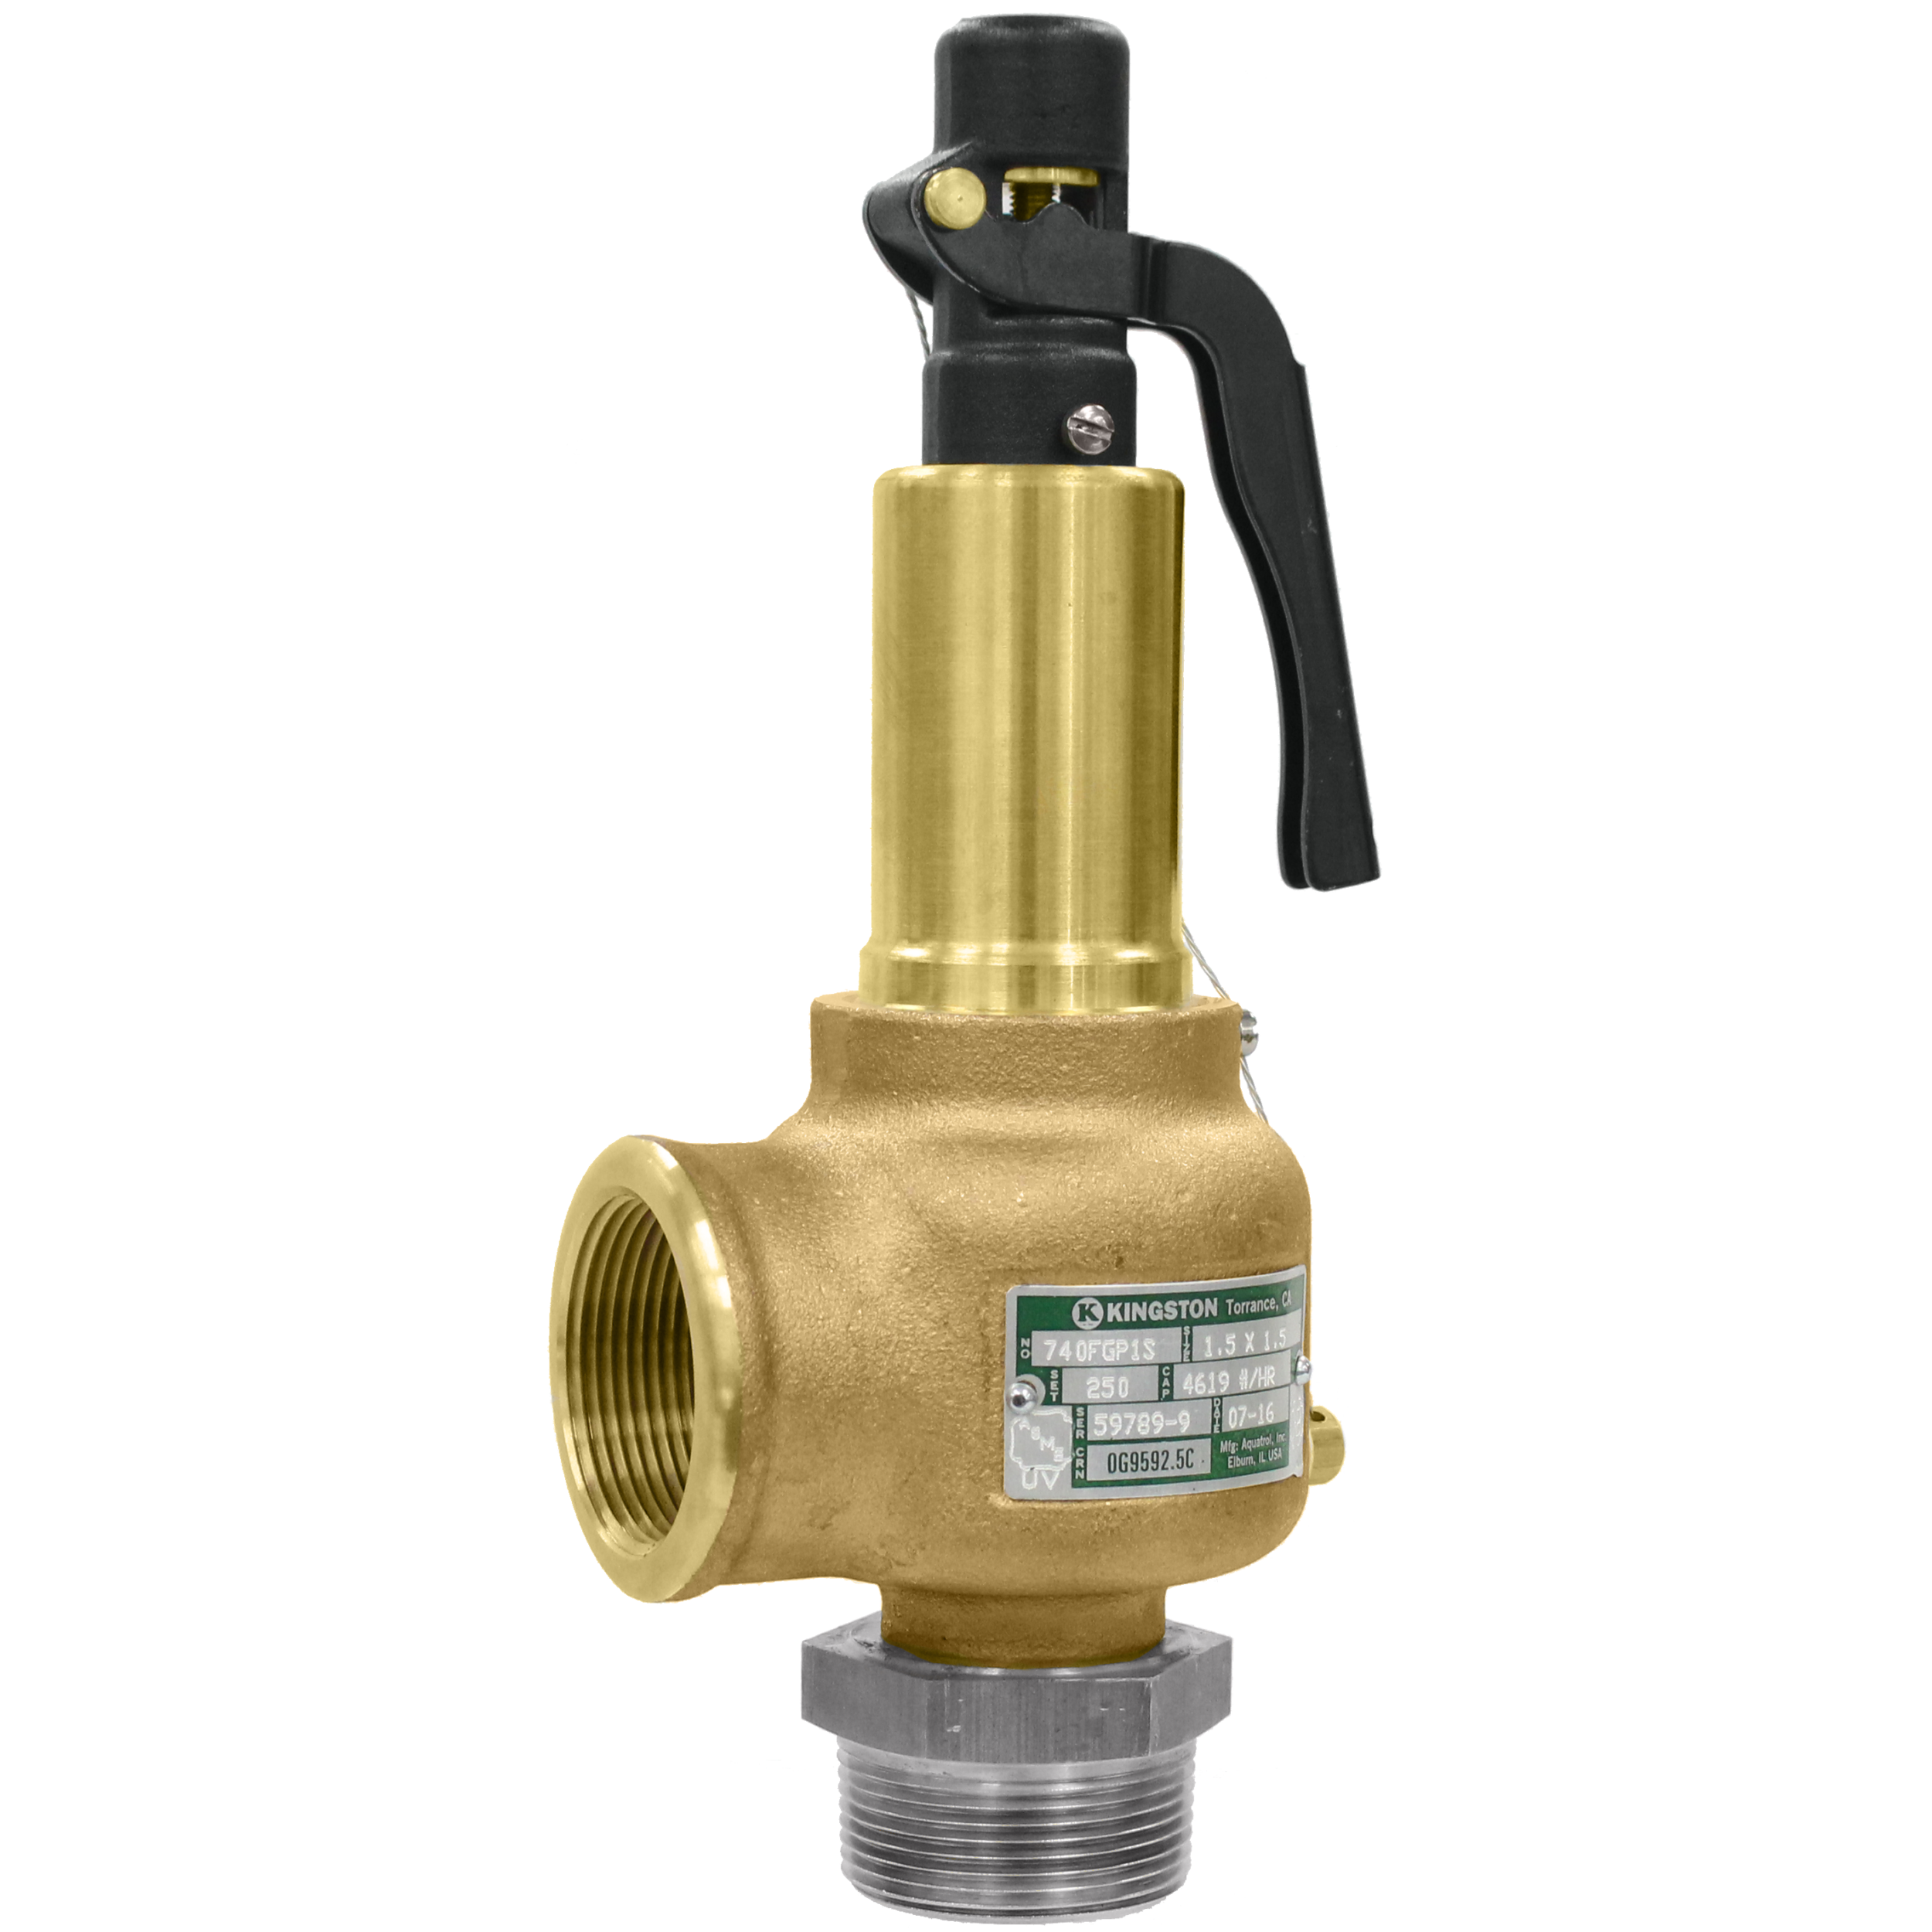 1 Inlet X 1 Outlet D Orifice ASME Section Viii Air//Gas Open Lever Silicone Disc Brass Body And Trim 375 Psi 1 Inlet X 1 Outlet Kingston Valves 710D66S1K1-375 Model 710 Safety Valve